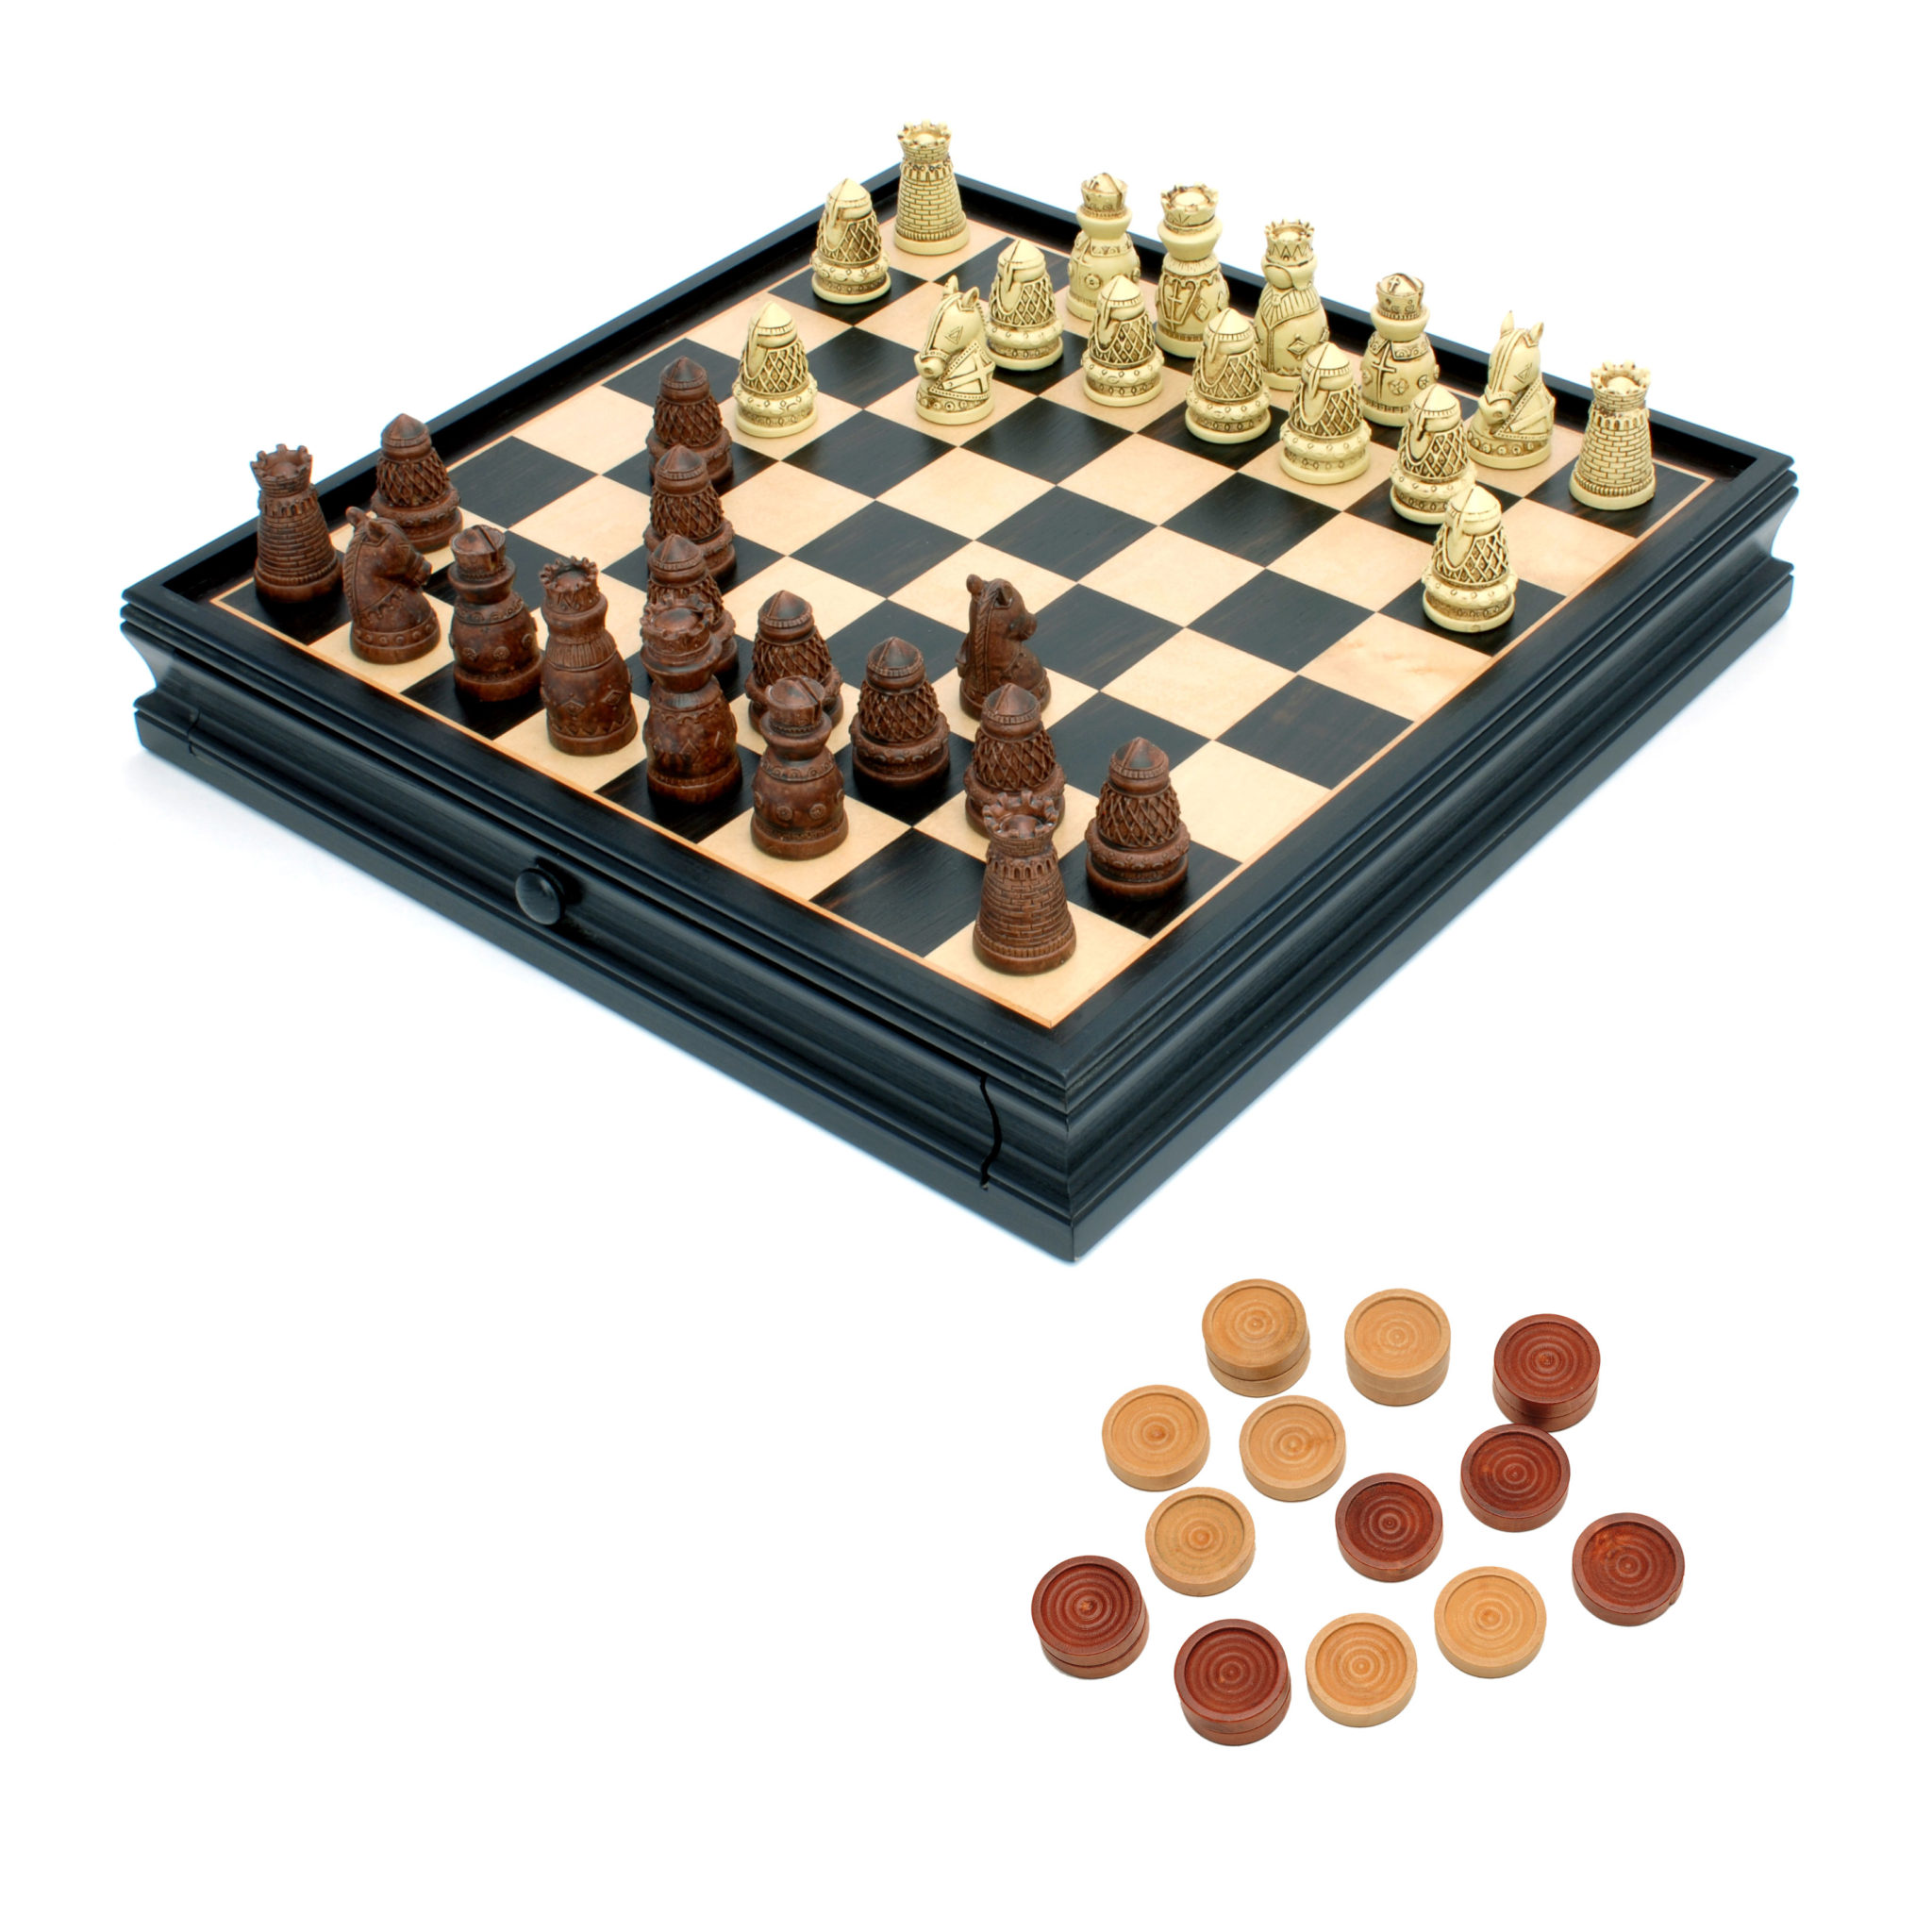 Medieval chess checkers set polystone pieces black stained wooden board with storage drawer - Puzzle boards with drawers ...